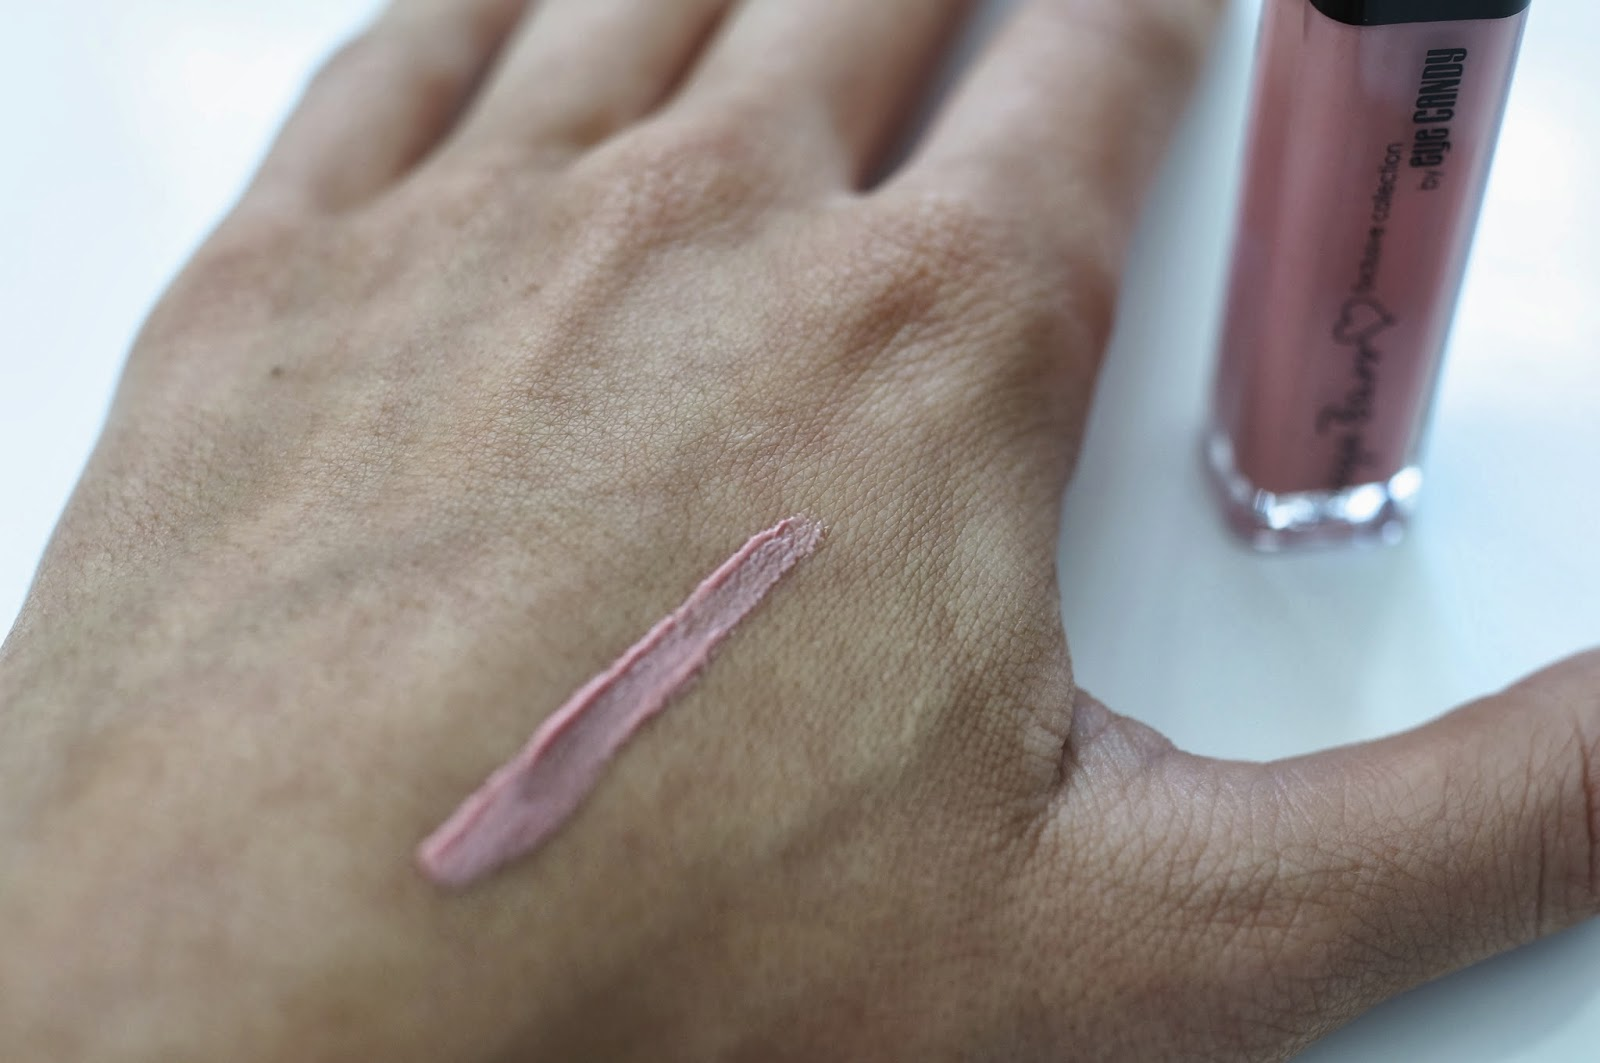 tanya burr lipgloss just peachy swatch